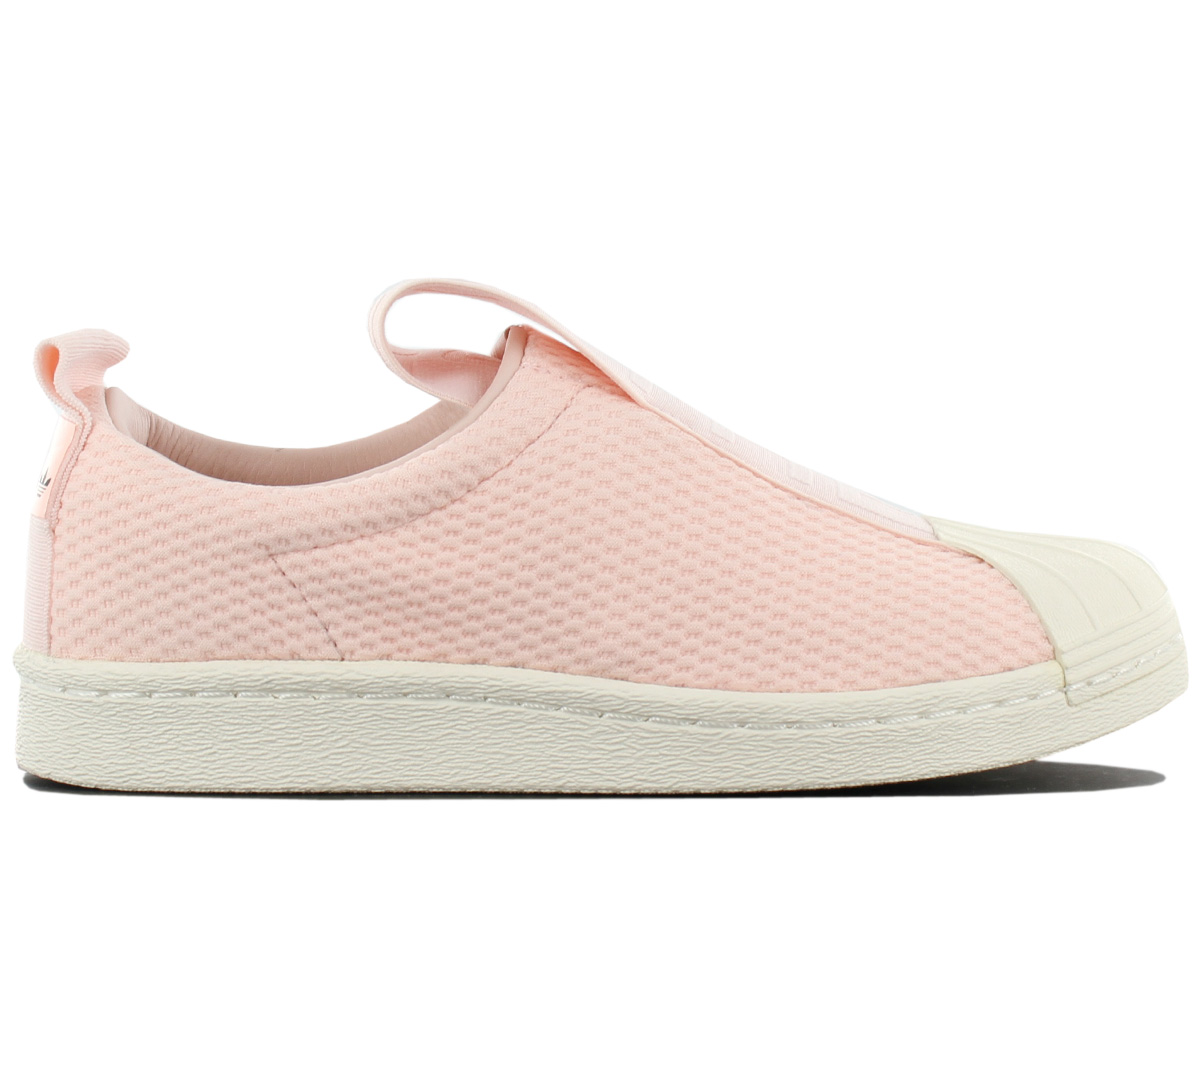 more photos 424b3 d8ead adidas Originals Superstar Bw35 Slip-on W Ice Pink Women Shoes SNEAKERS  By9138 UK 5.5. About this product. Picture 1 of 6  Picture 2 of 6 ...